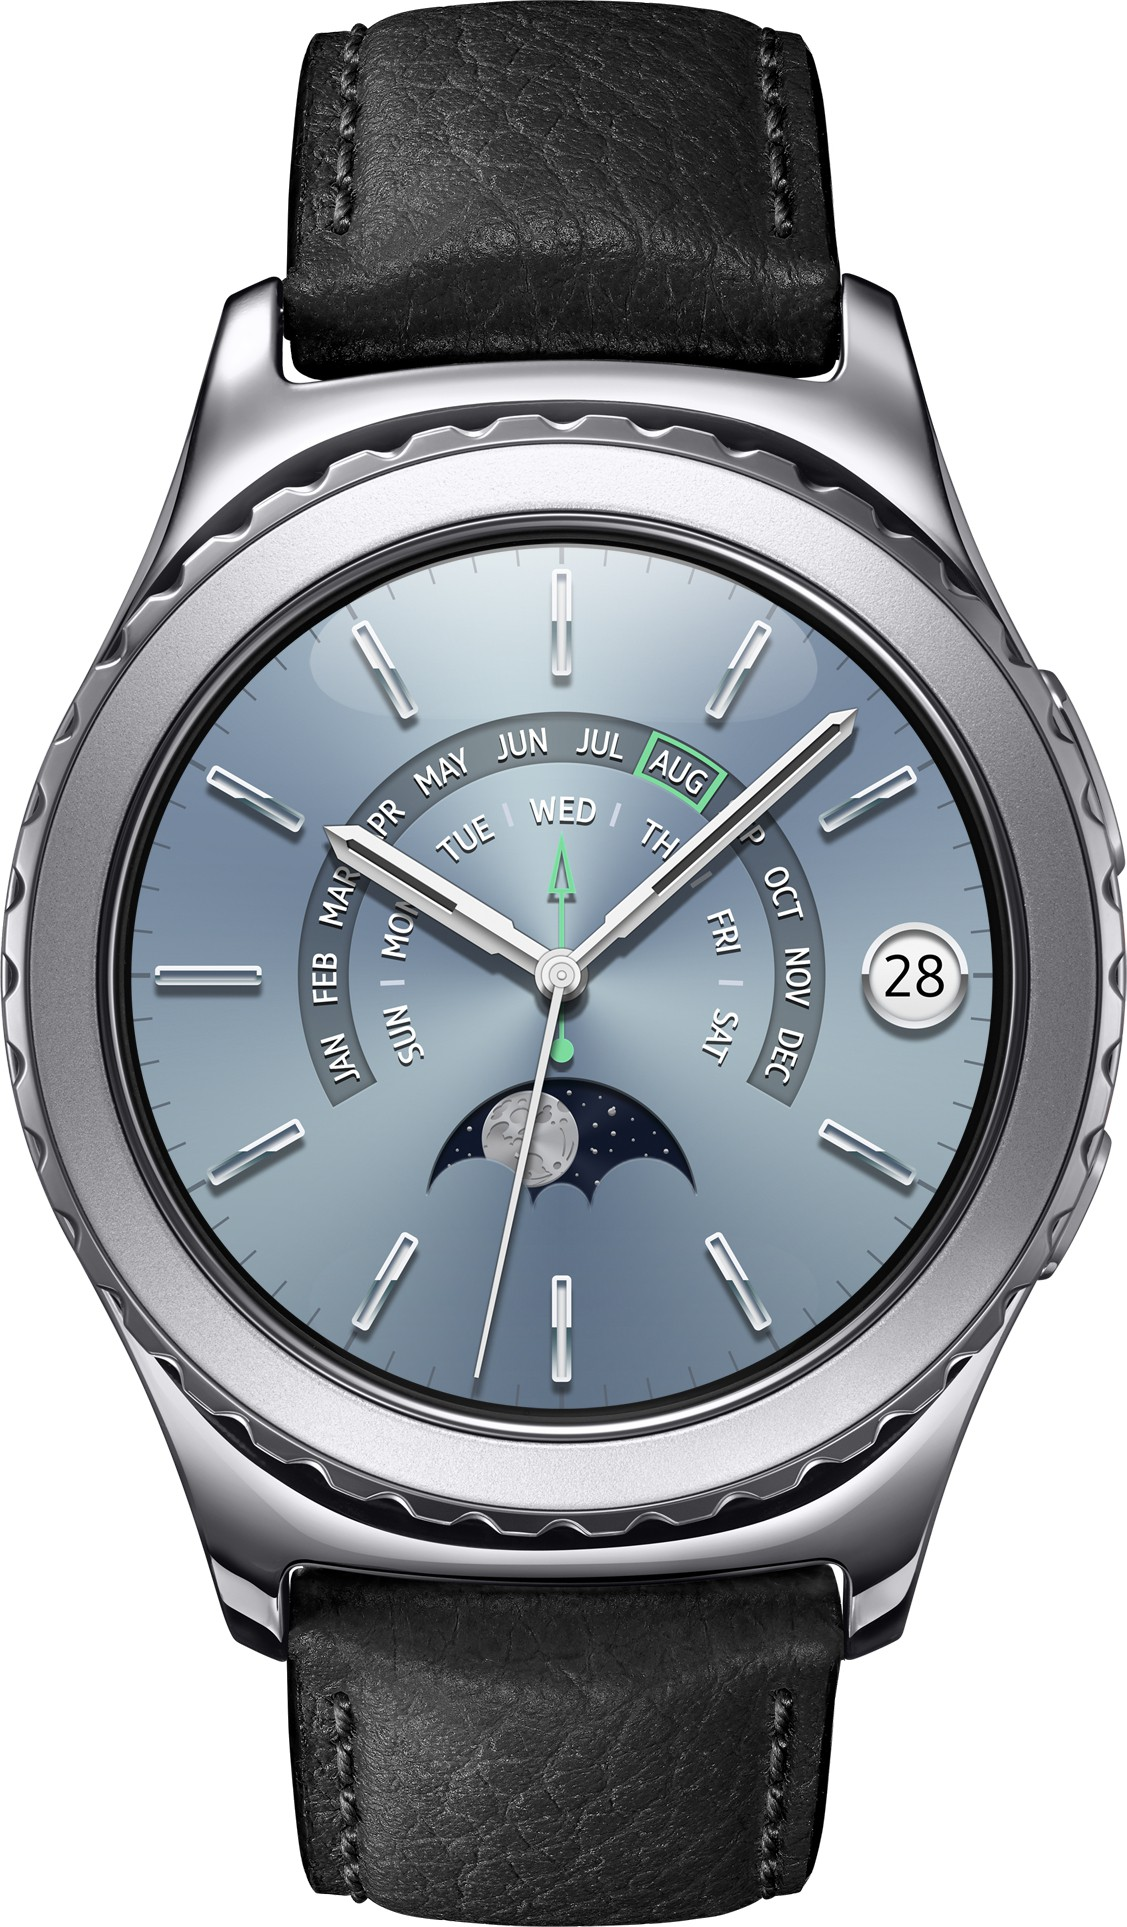 Deals - Bangalore - Samsung <br> Smartwatches<br> Category - wearable_smart_devices<br> Business - Flipkart.com